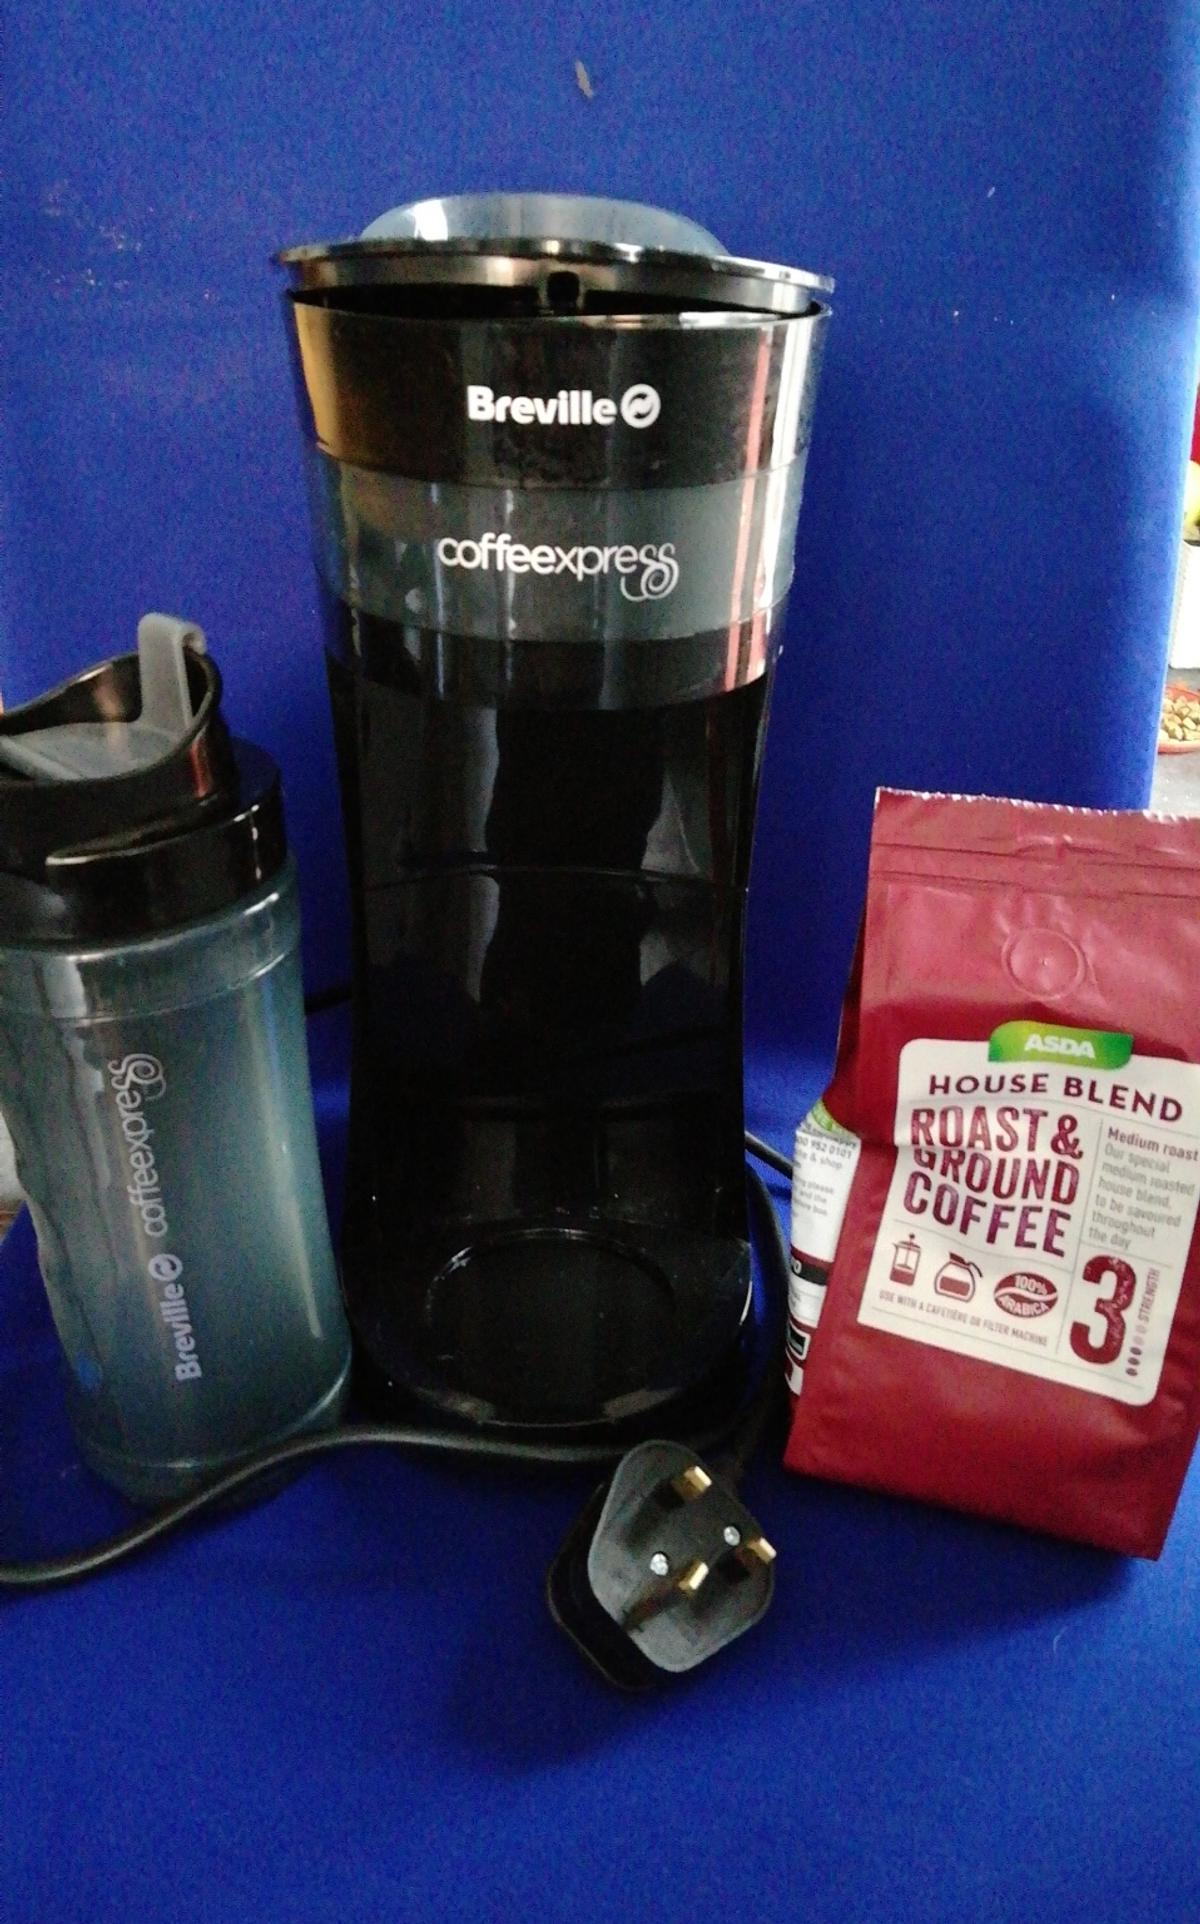 Breville Coffee Express One Cup Asda Coffee In Nn15